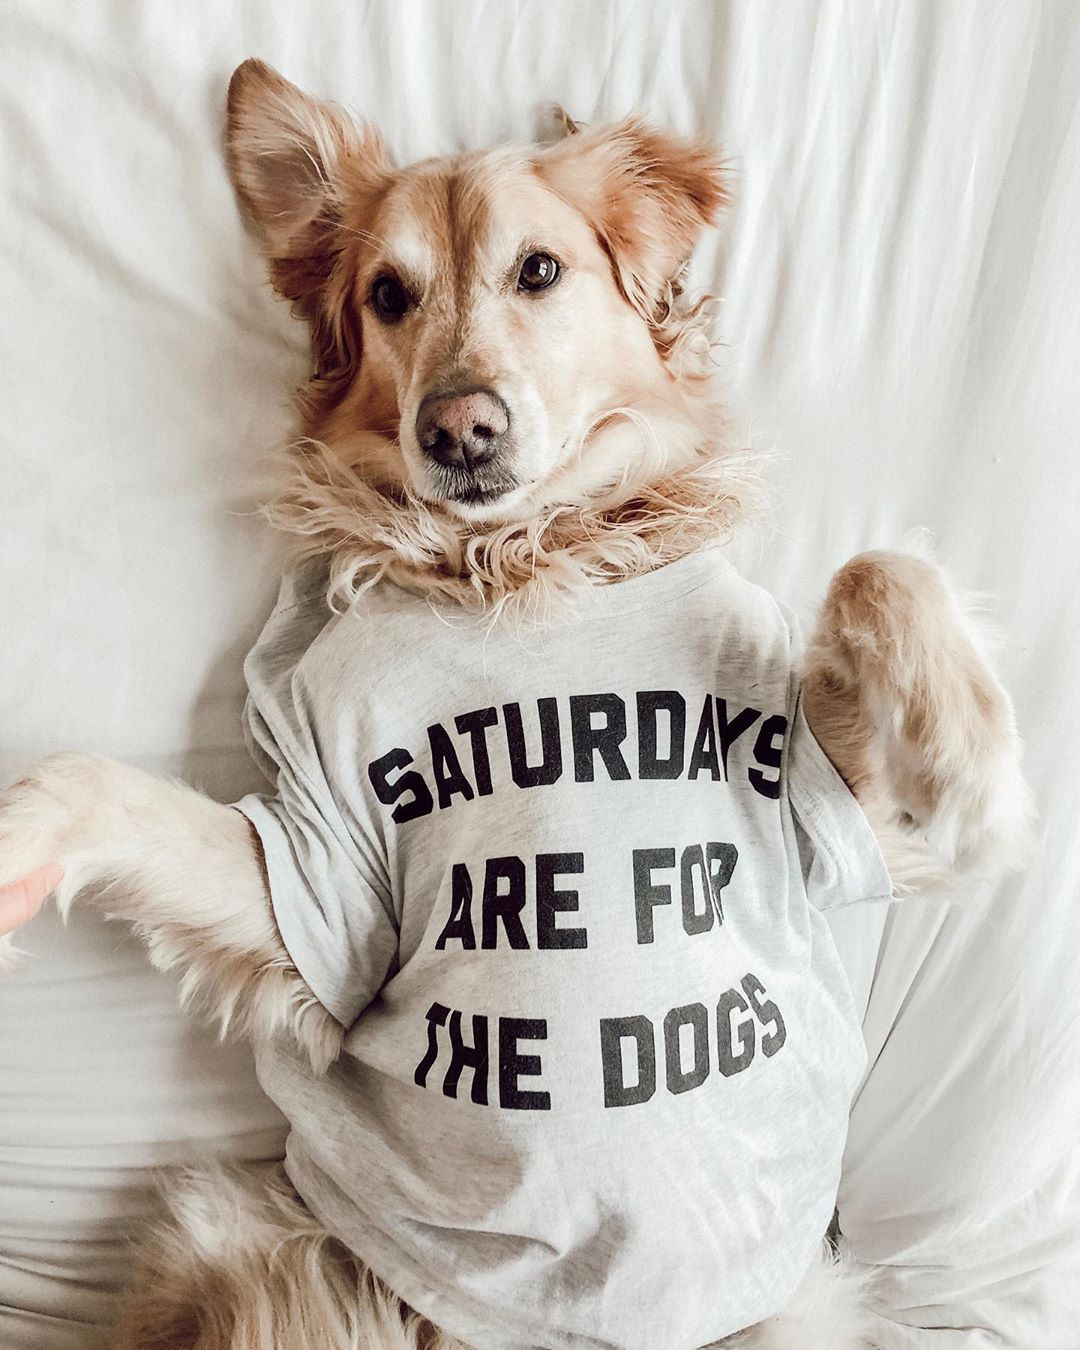 Saturdays Are For The Dogs Dogs Smiling Dogs Dog Lovers